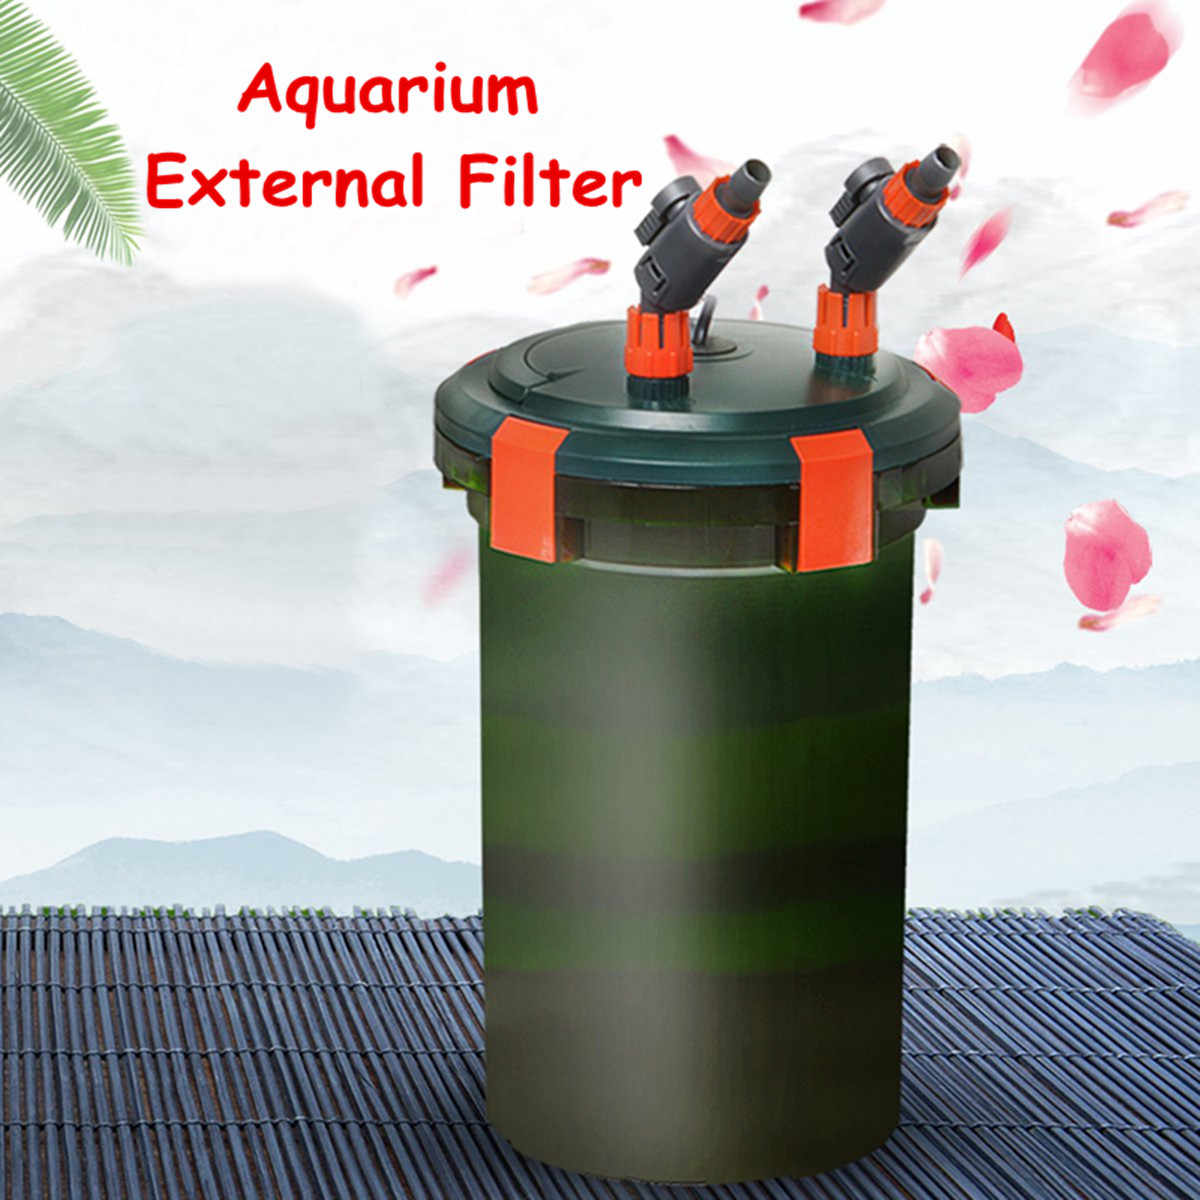 6-25W 450-800L/H Aquarium Fish Tank External Canister Filter with Cotton Media External Mute Fish Tank Filter UV Sterilizer